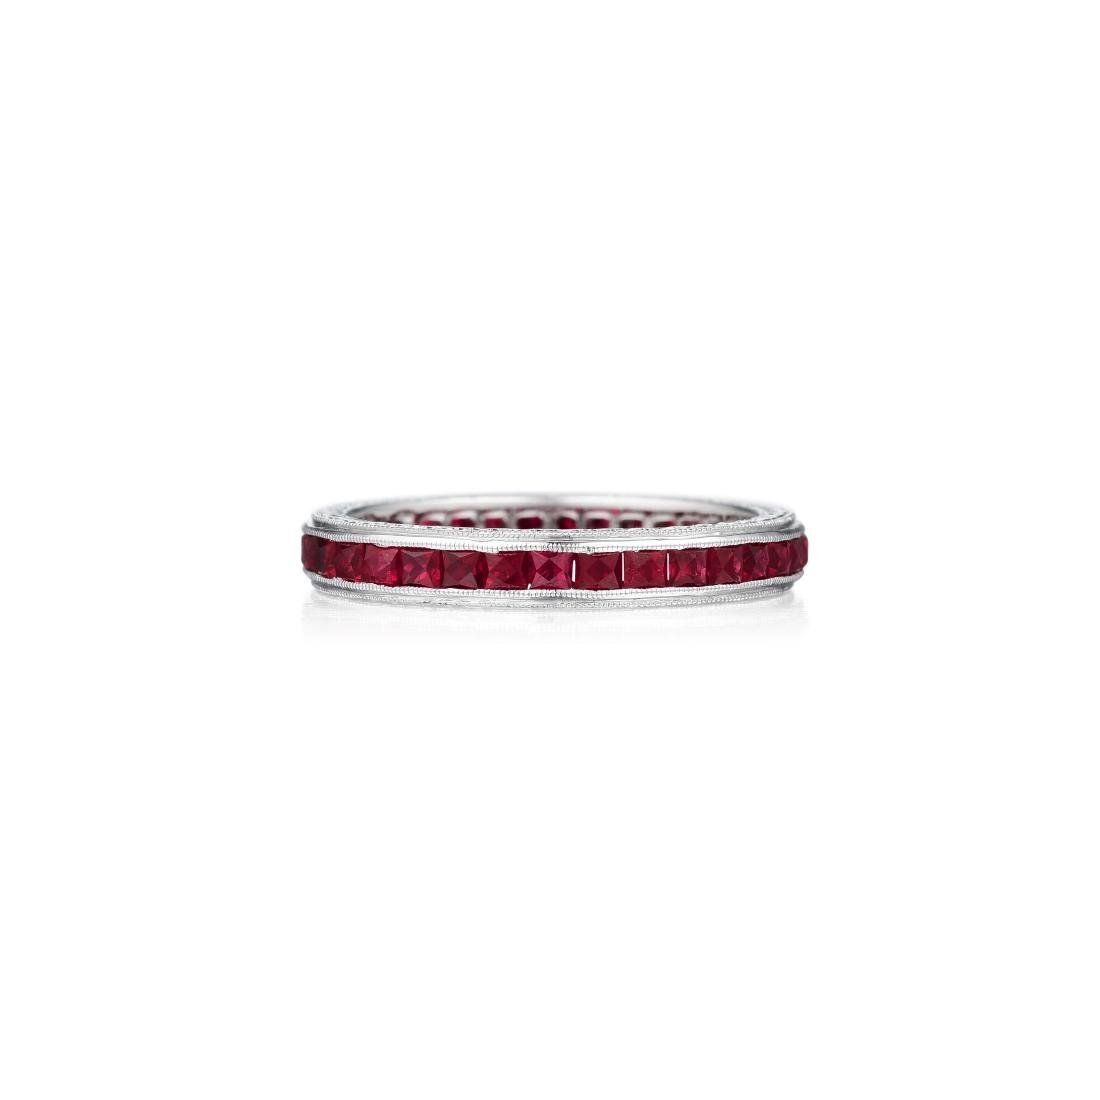 An 18K White Gold Ruby Band